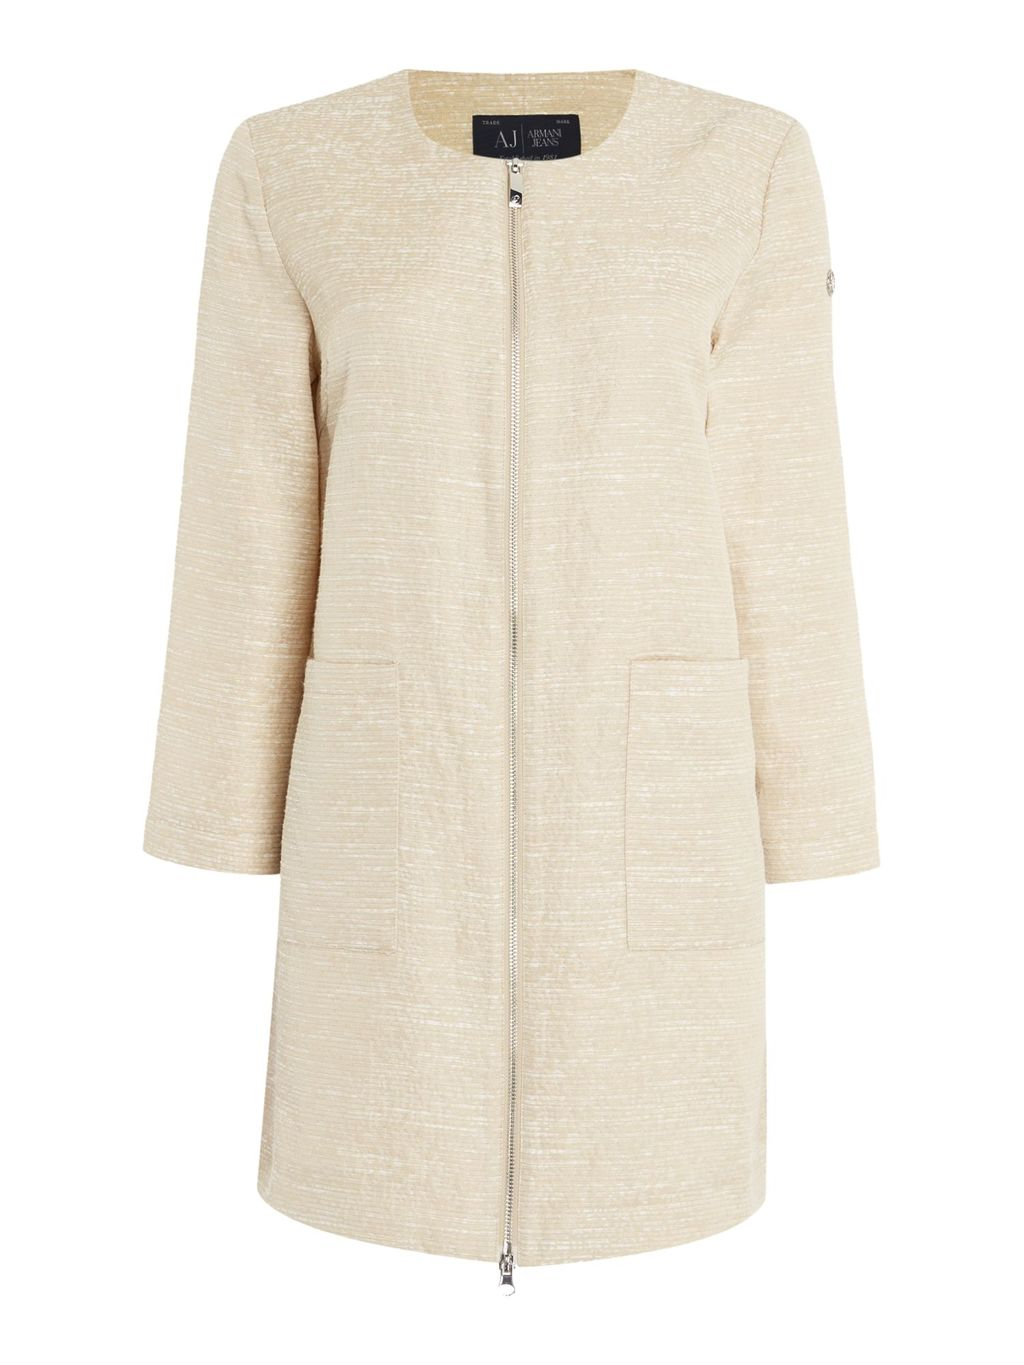 Textured Zip Through Coat, Beige - collar: round collar/collarless; style: single breasted; pattern: herringbone/tweed; length: mid thigh; predominant colour: stone; fit: straight cut (boxy); fibres: wool - mix; occasions: occasion; sleeve length: long sleeve; sleeve style: standard; collar break: high; pattern type: fabric; pattern size: light/subtle; texture group: other - light to midweight; season: s/s 2016; wardrobe: event; embellishment location: hip